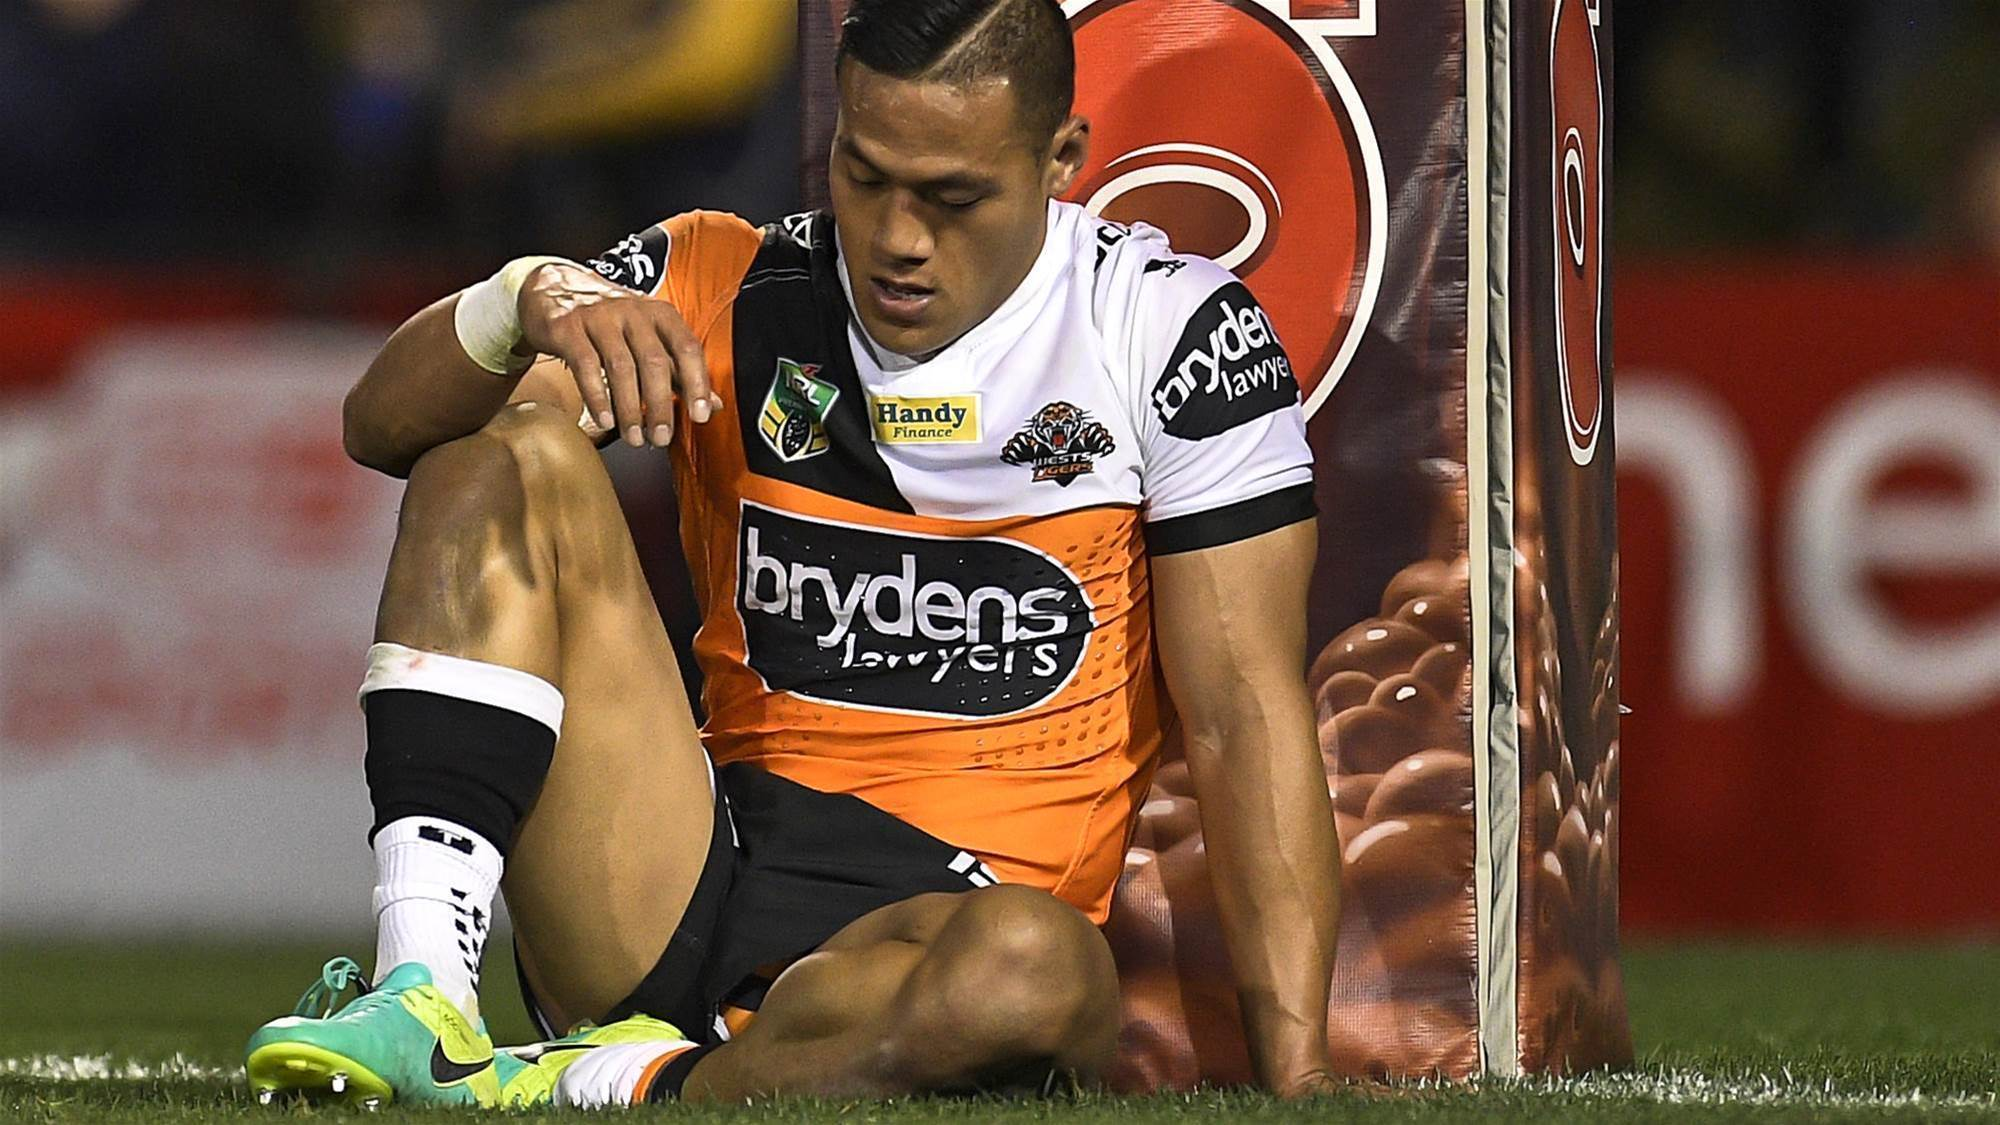 Police investigating NRL star for match-fixing